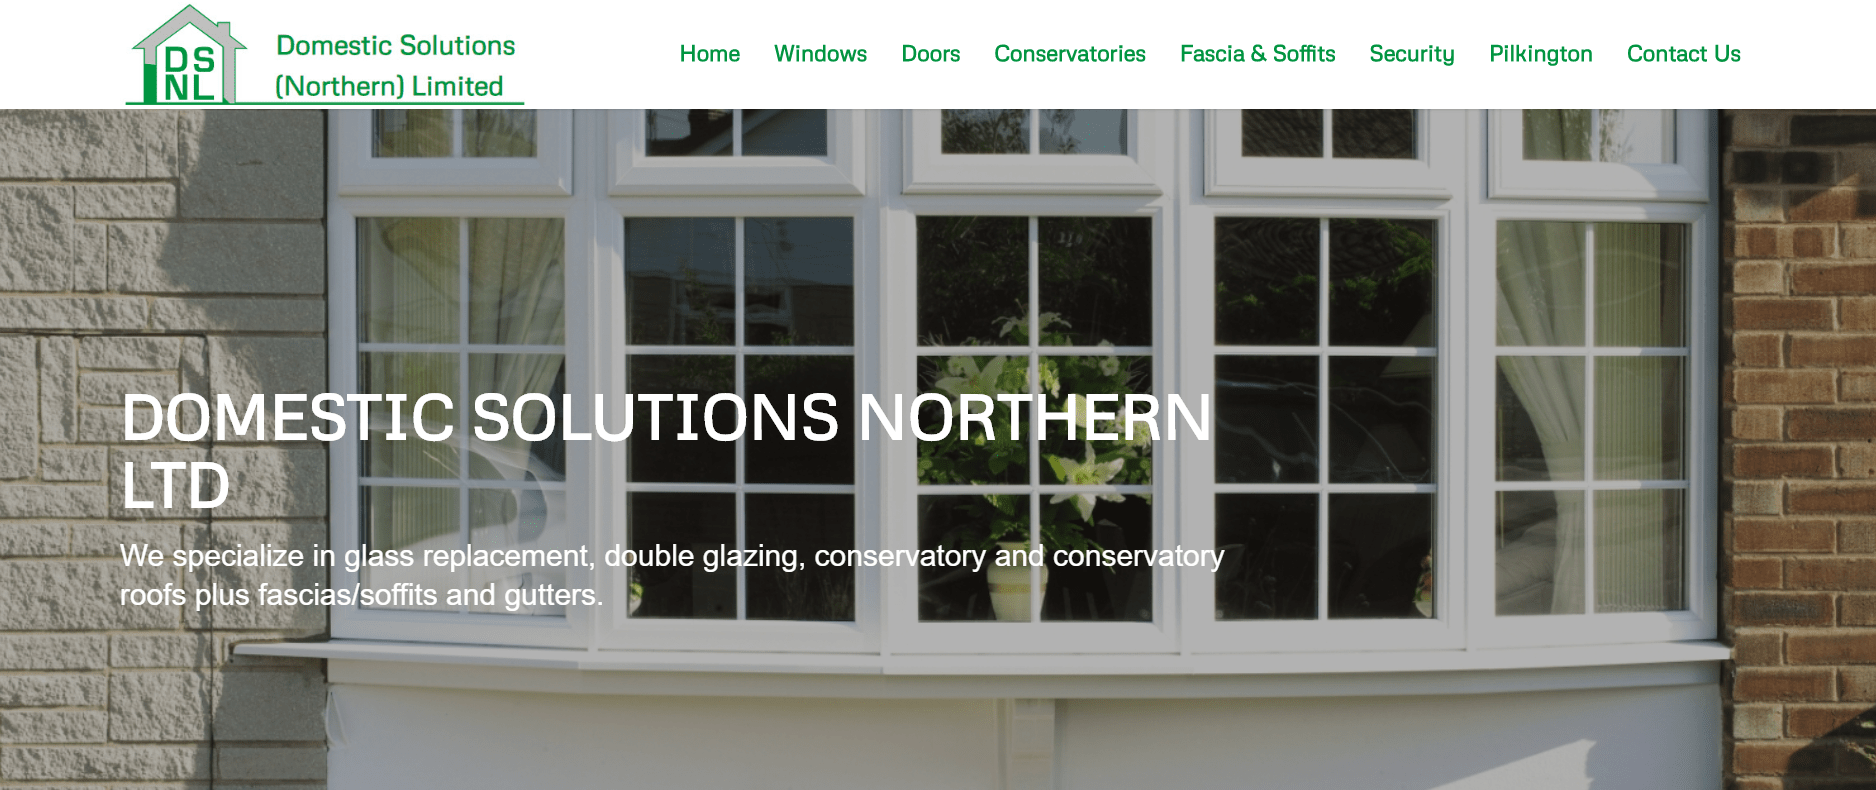 Domestic Solutions Northern